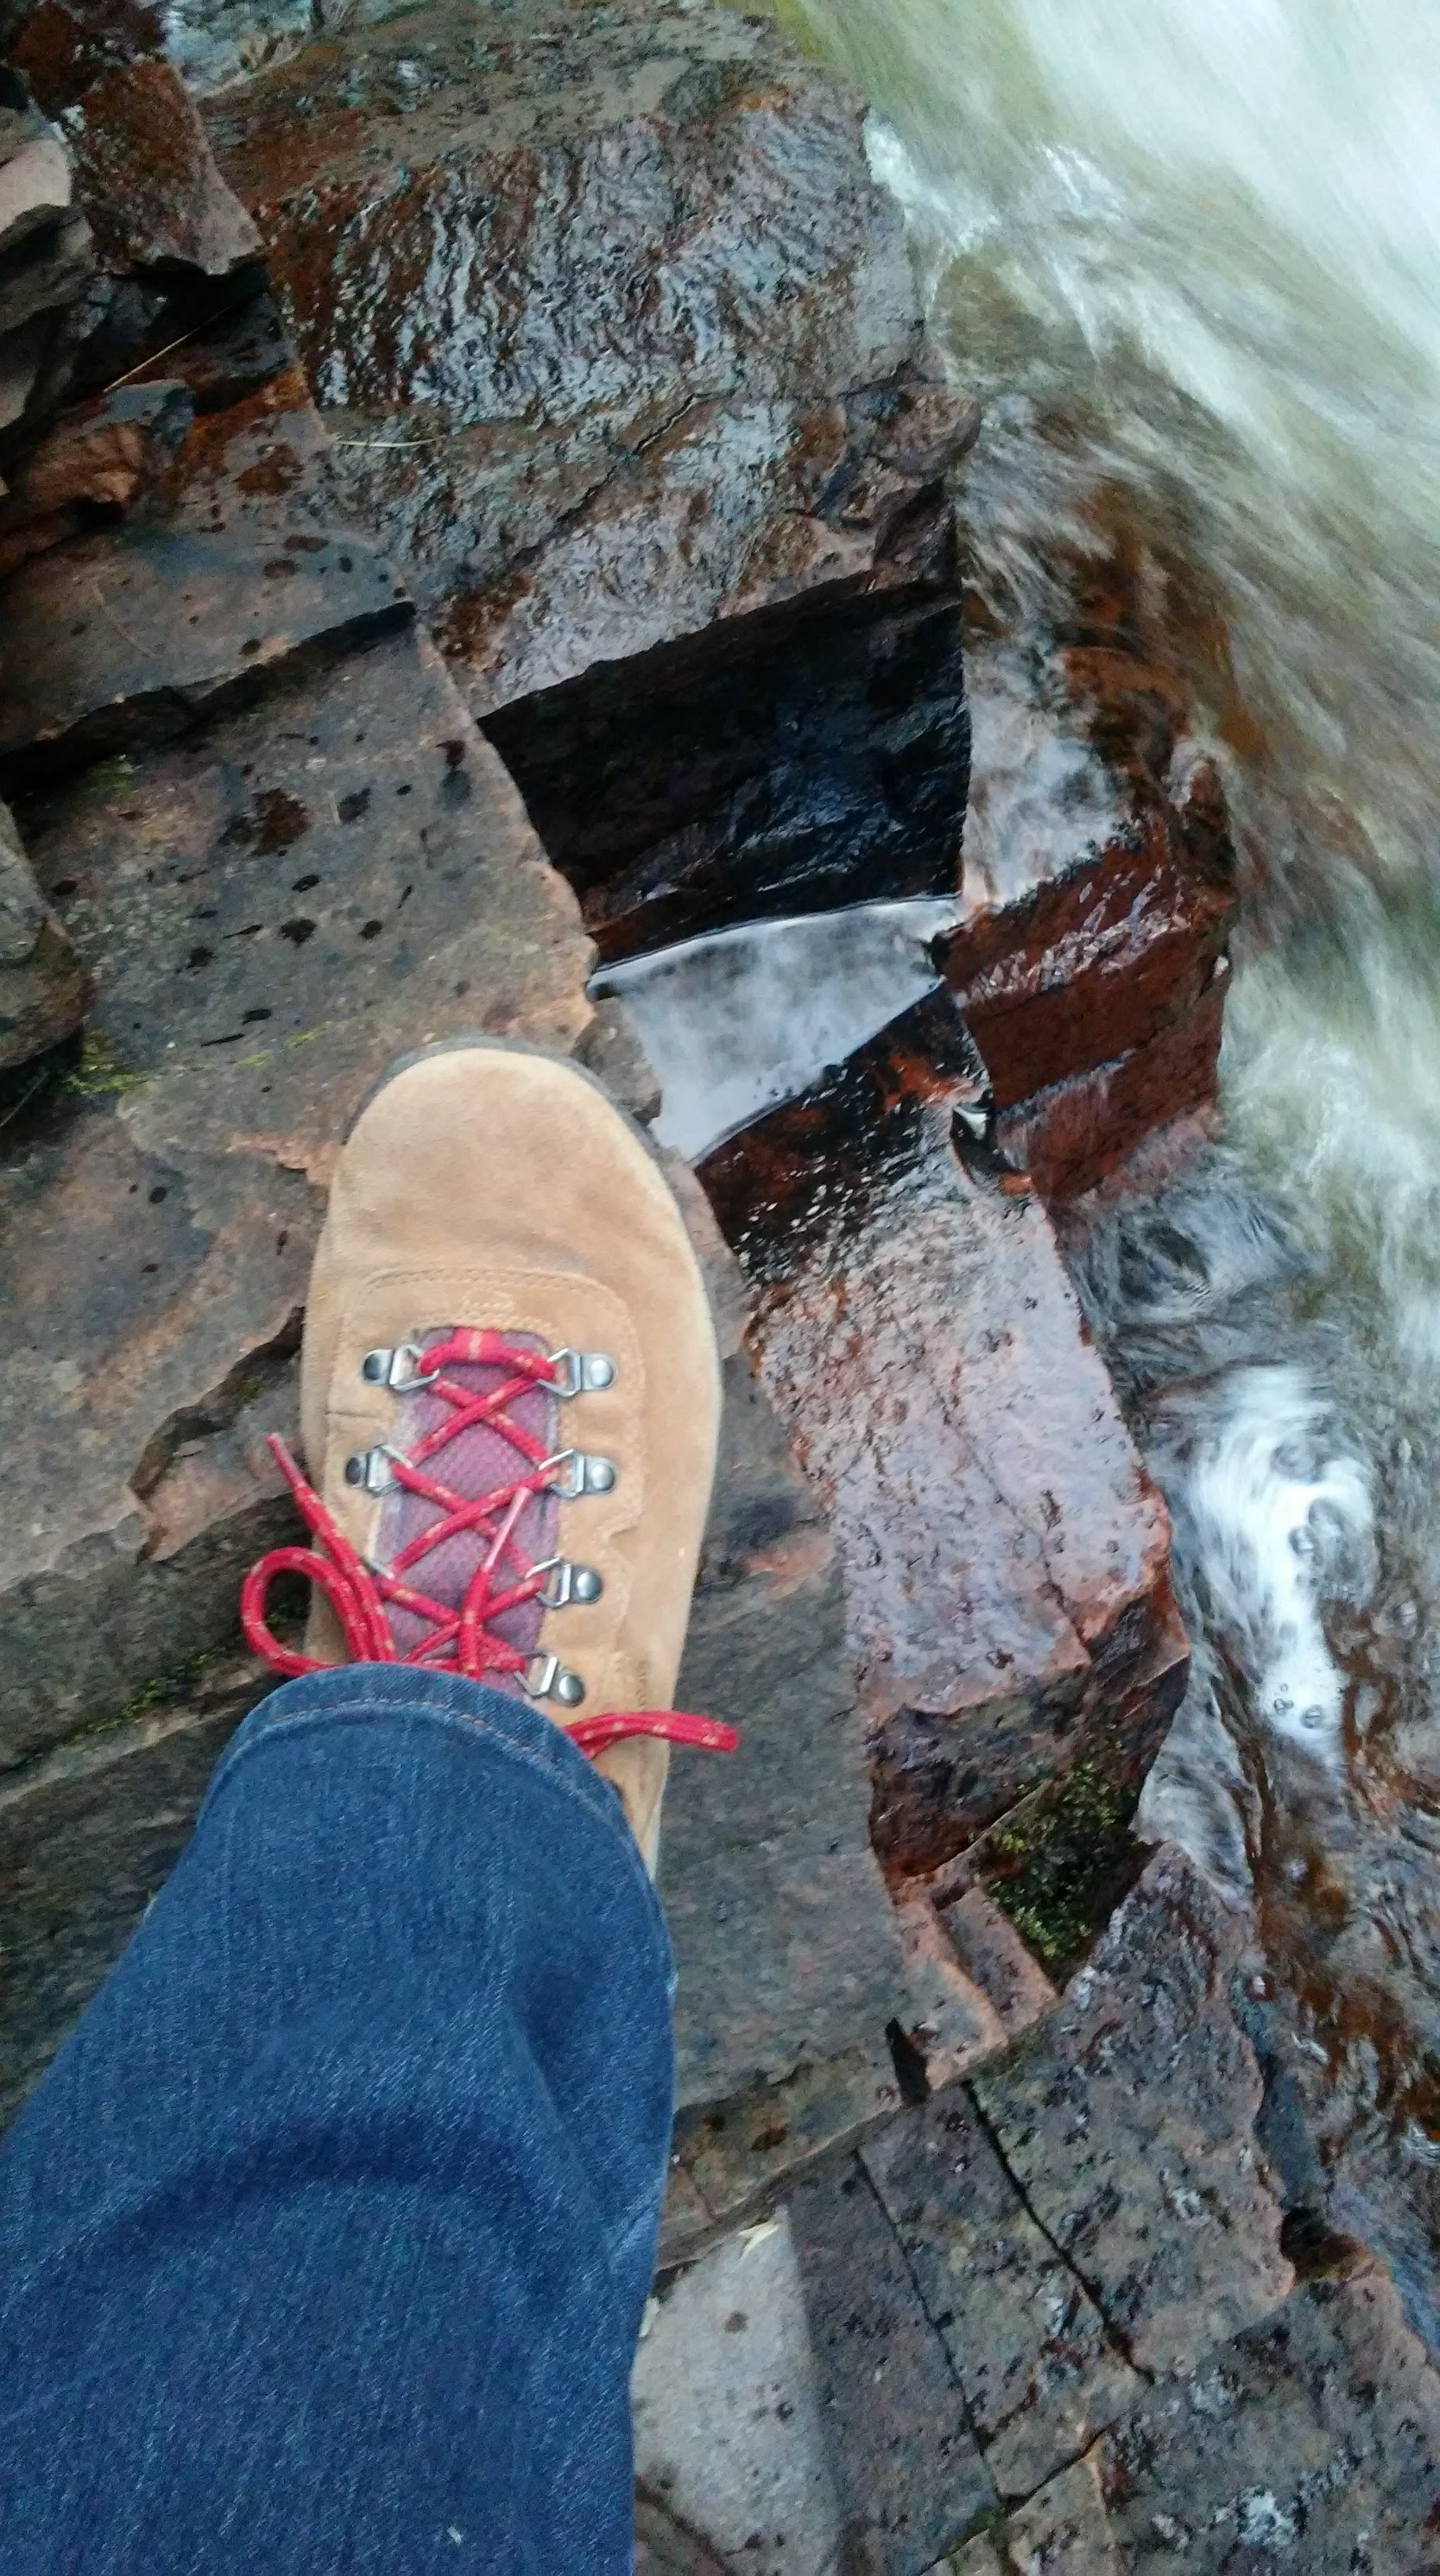 hiking boot and rocks and water